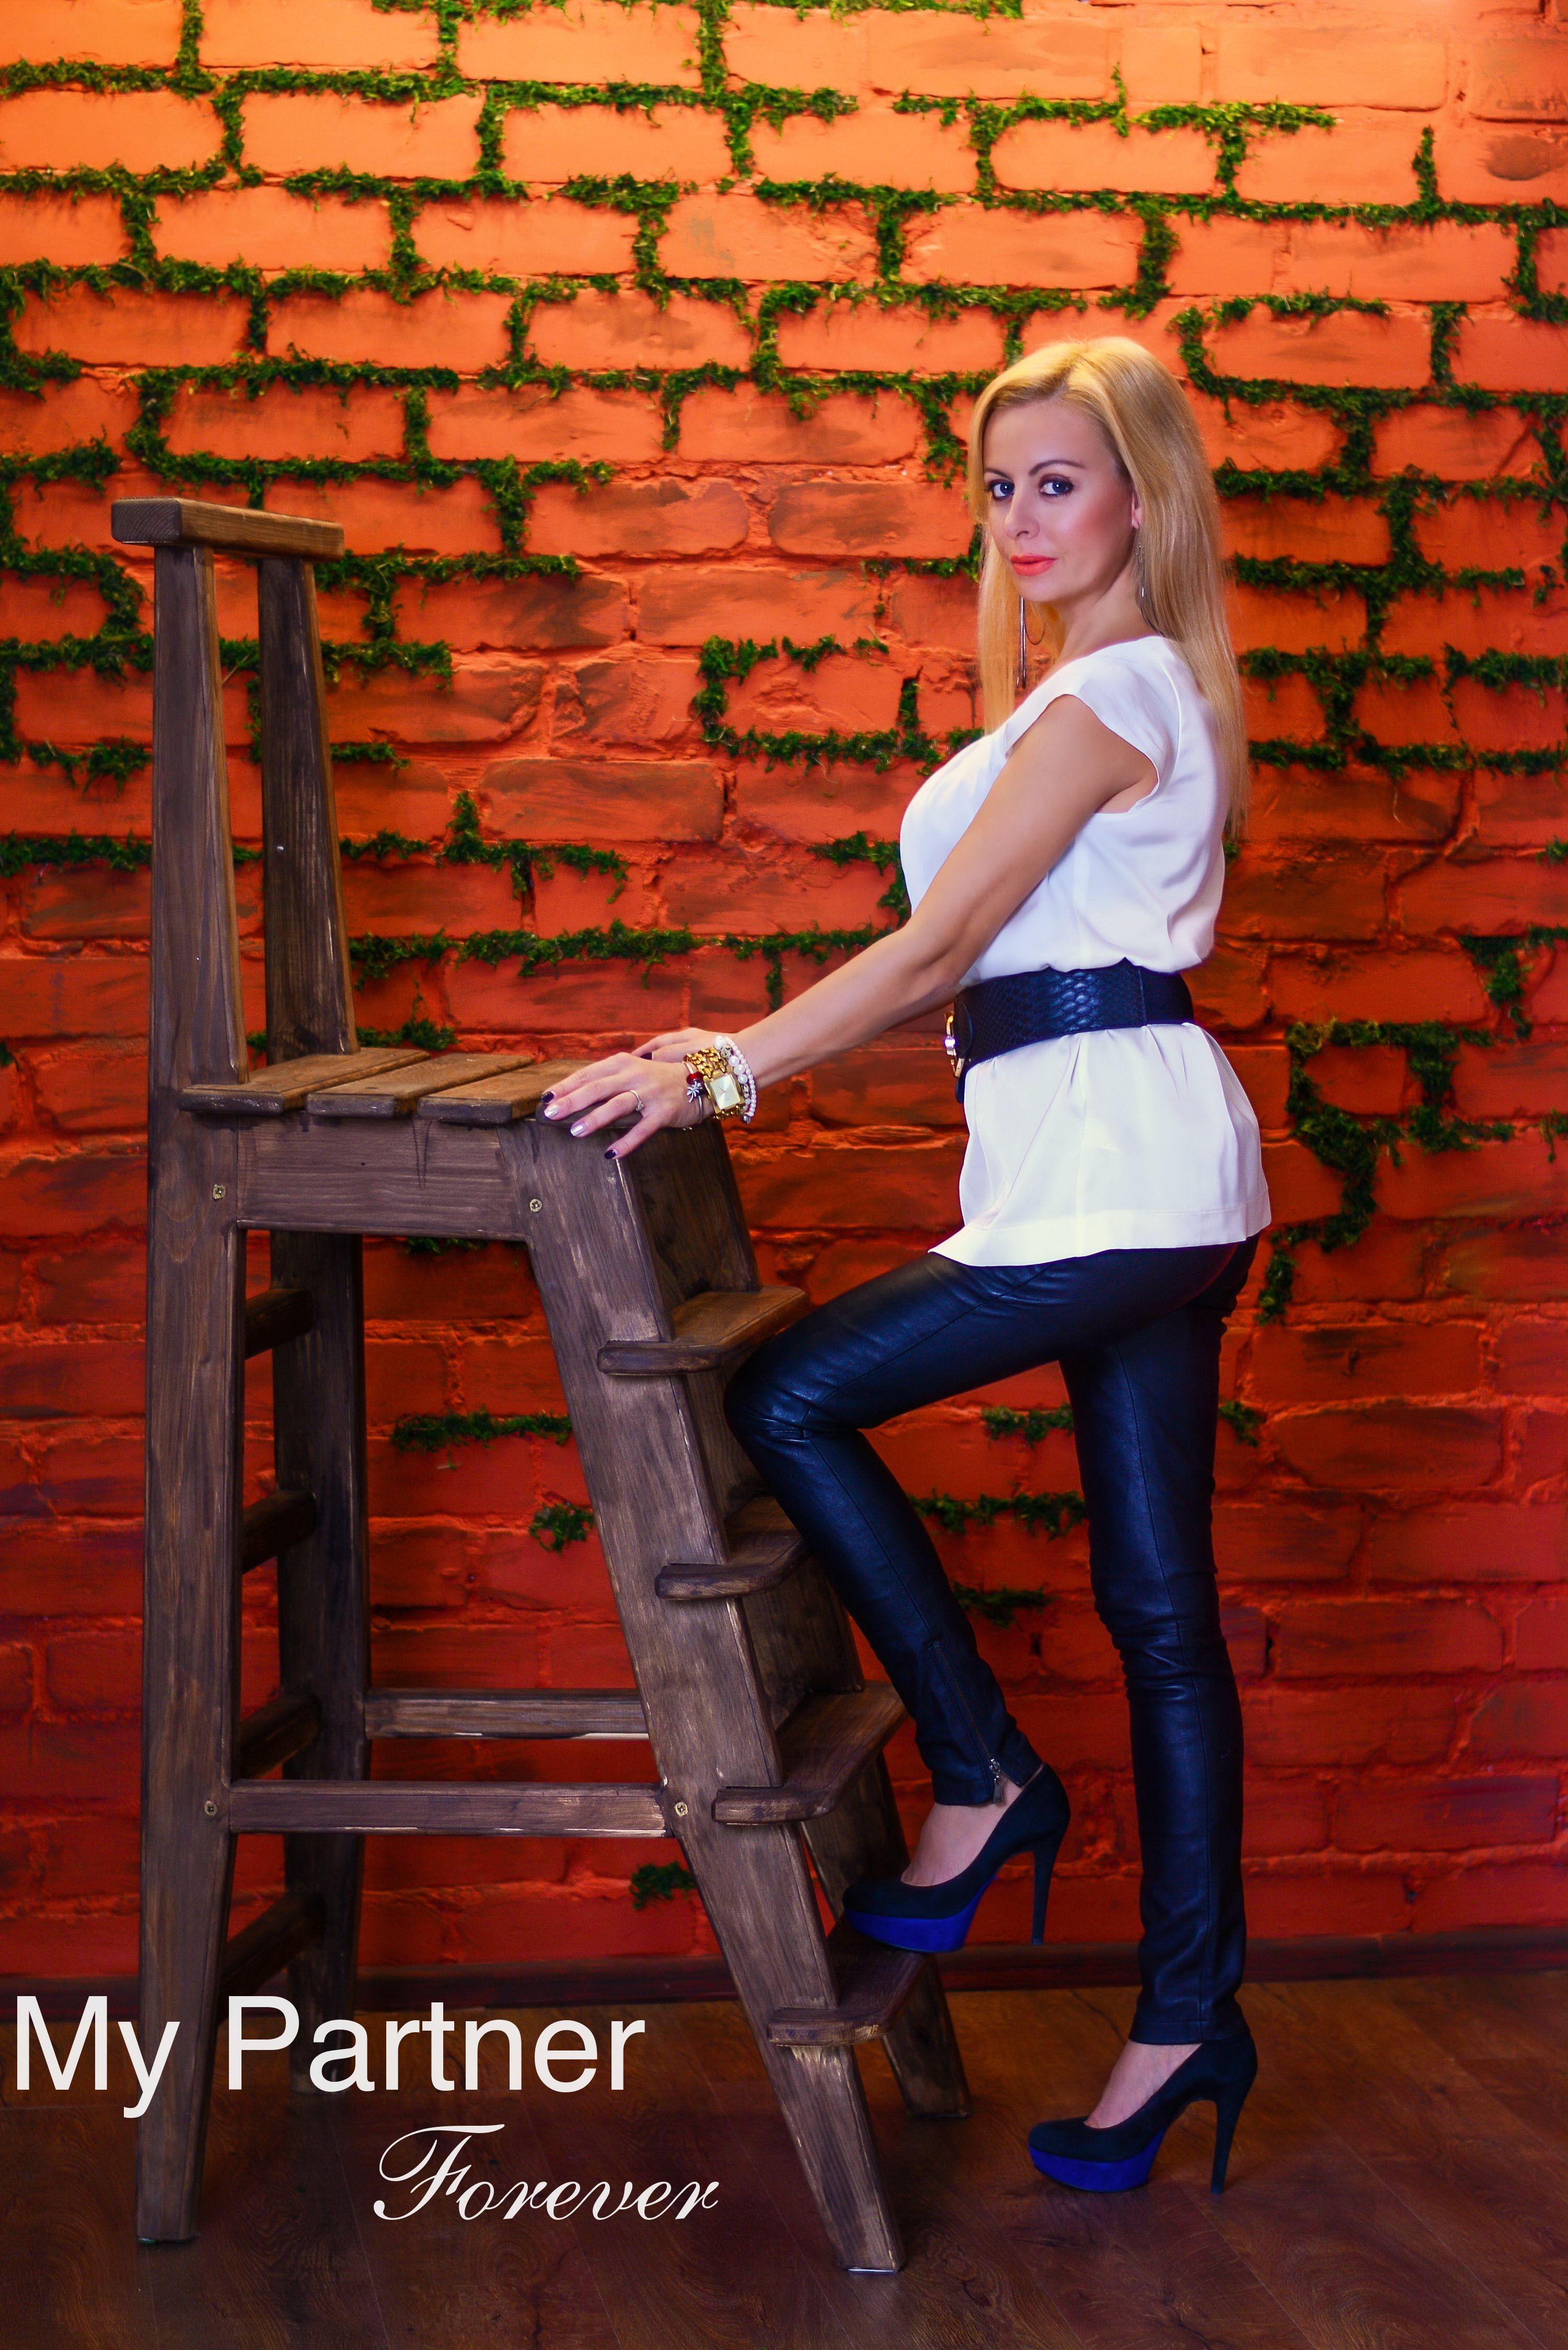 Ukrainian Girl Looking for Men - Yana from Kharkov, Ukraine